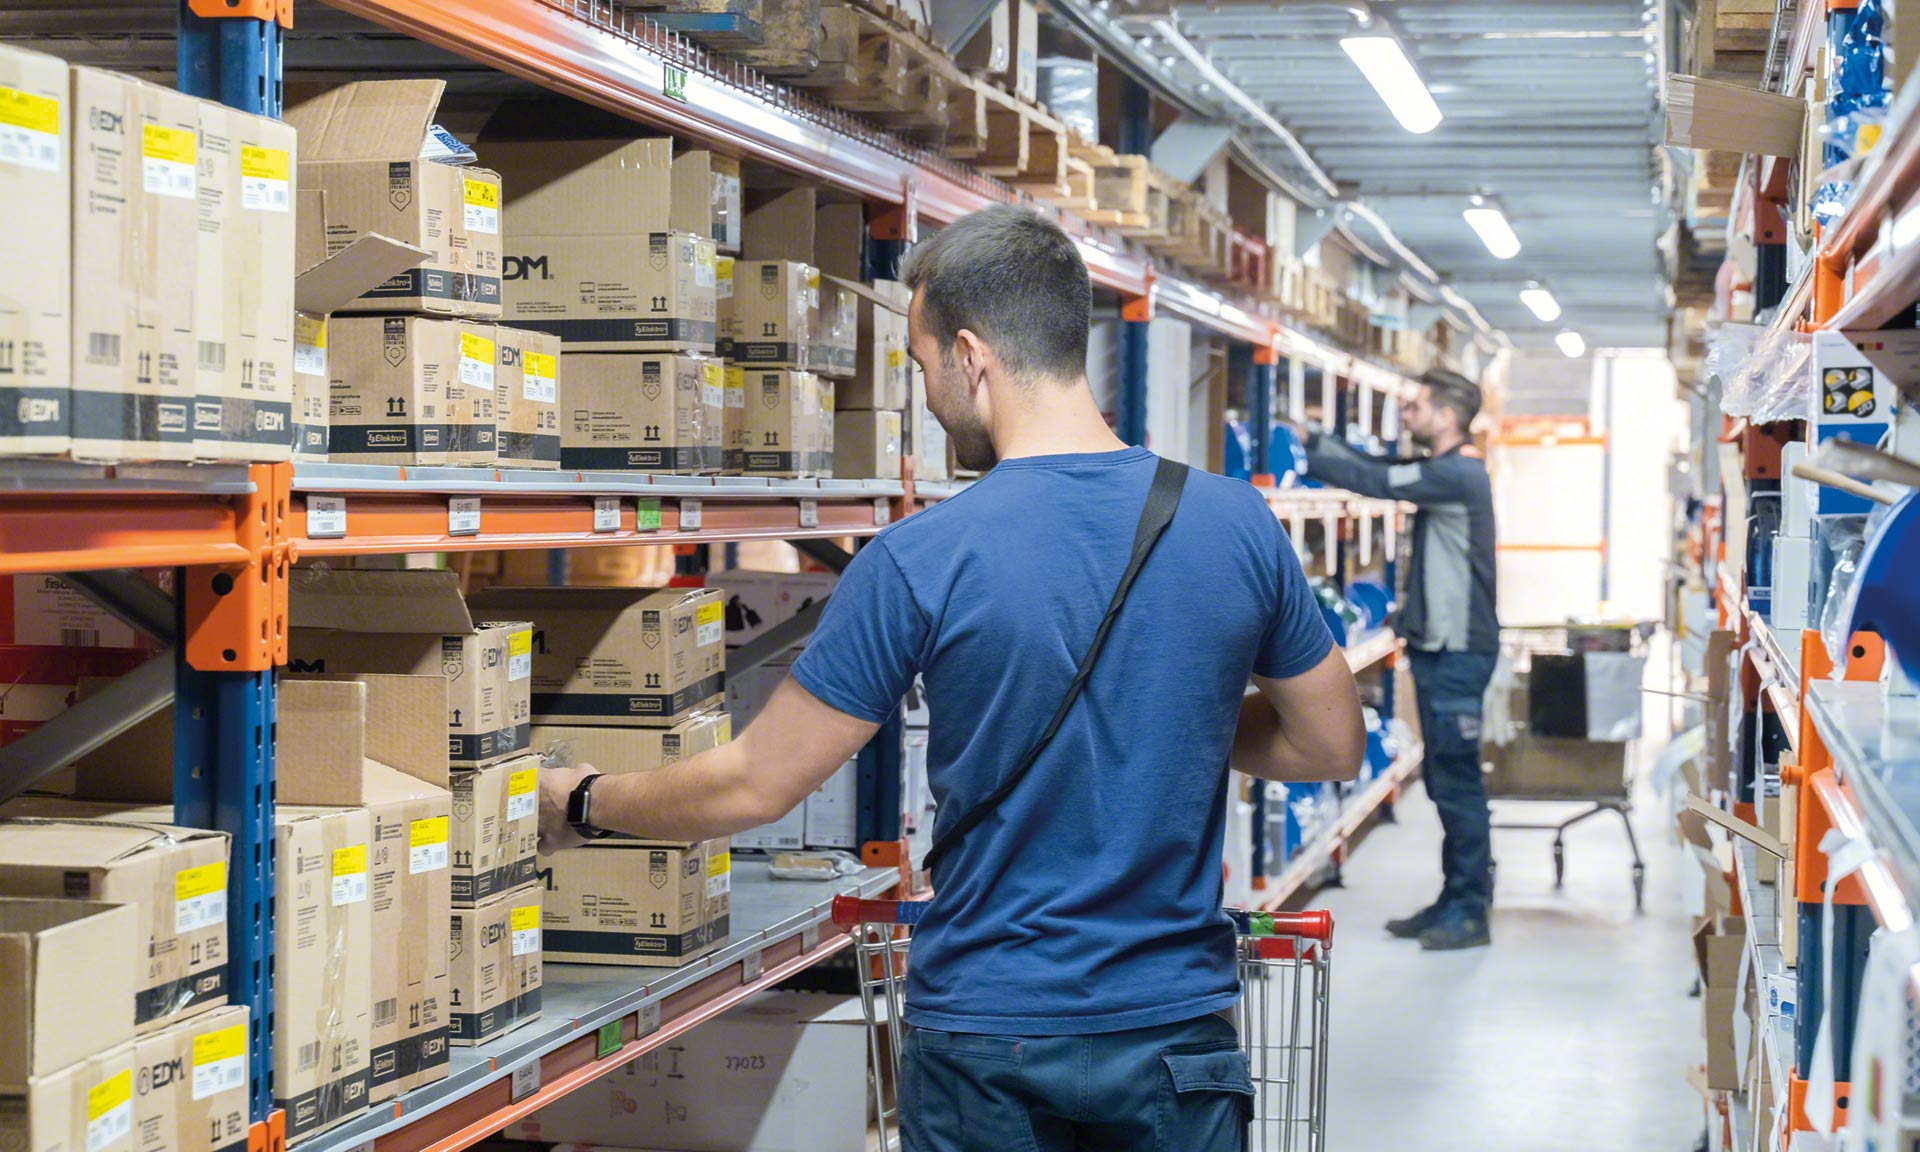 Zone picking consists of dividing up the warehouse into into different areas according to multiple criteria